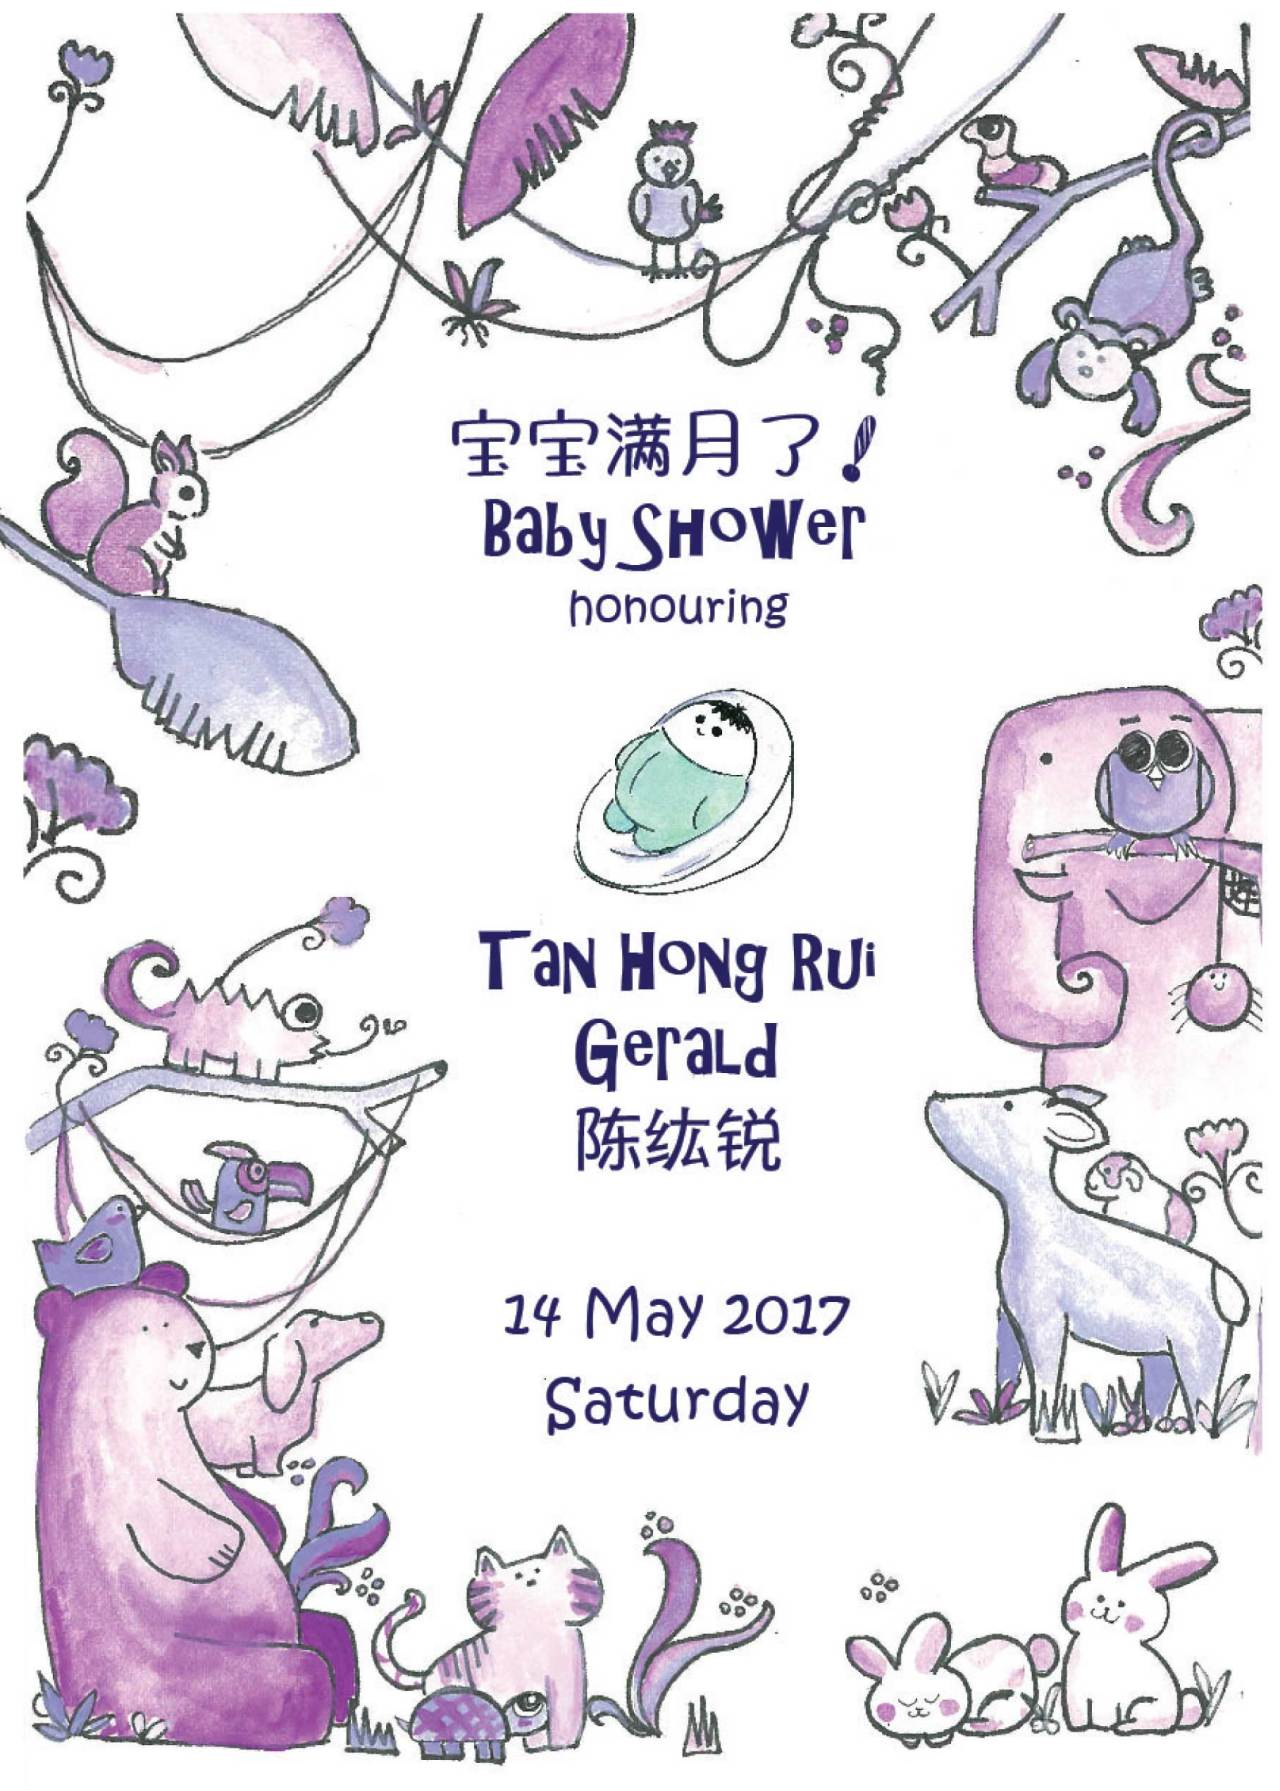 Custom Illustration for Gerald's Baby Shower Poster